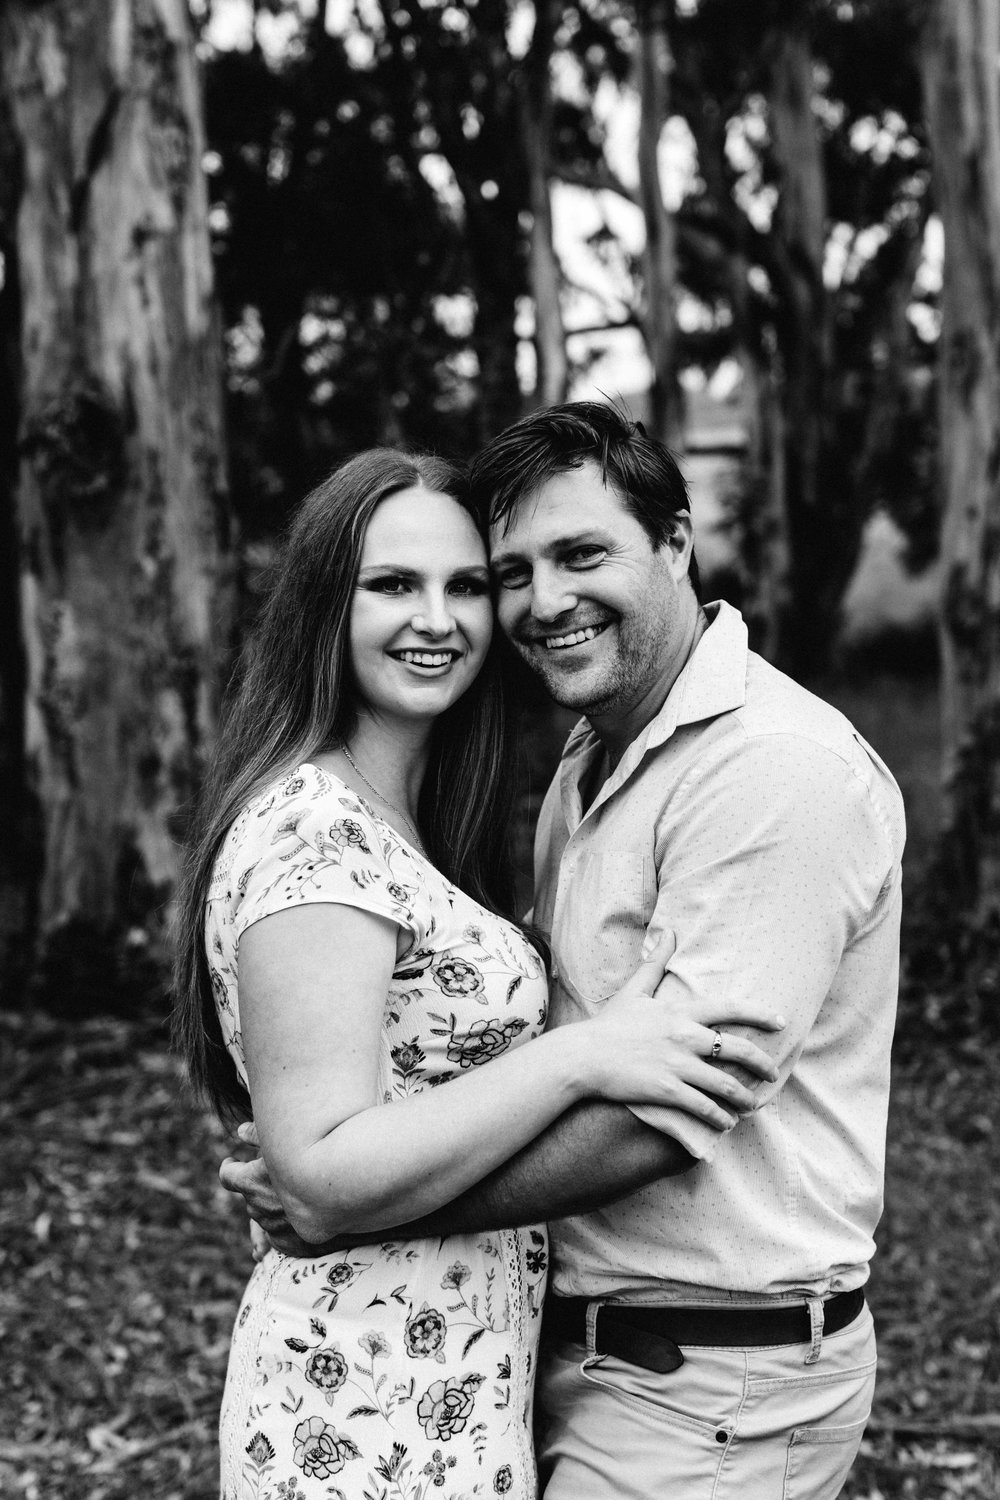 camden-engagement-session-wollondilly-photography-nadine-bernard-22.jpg